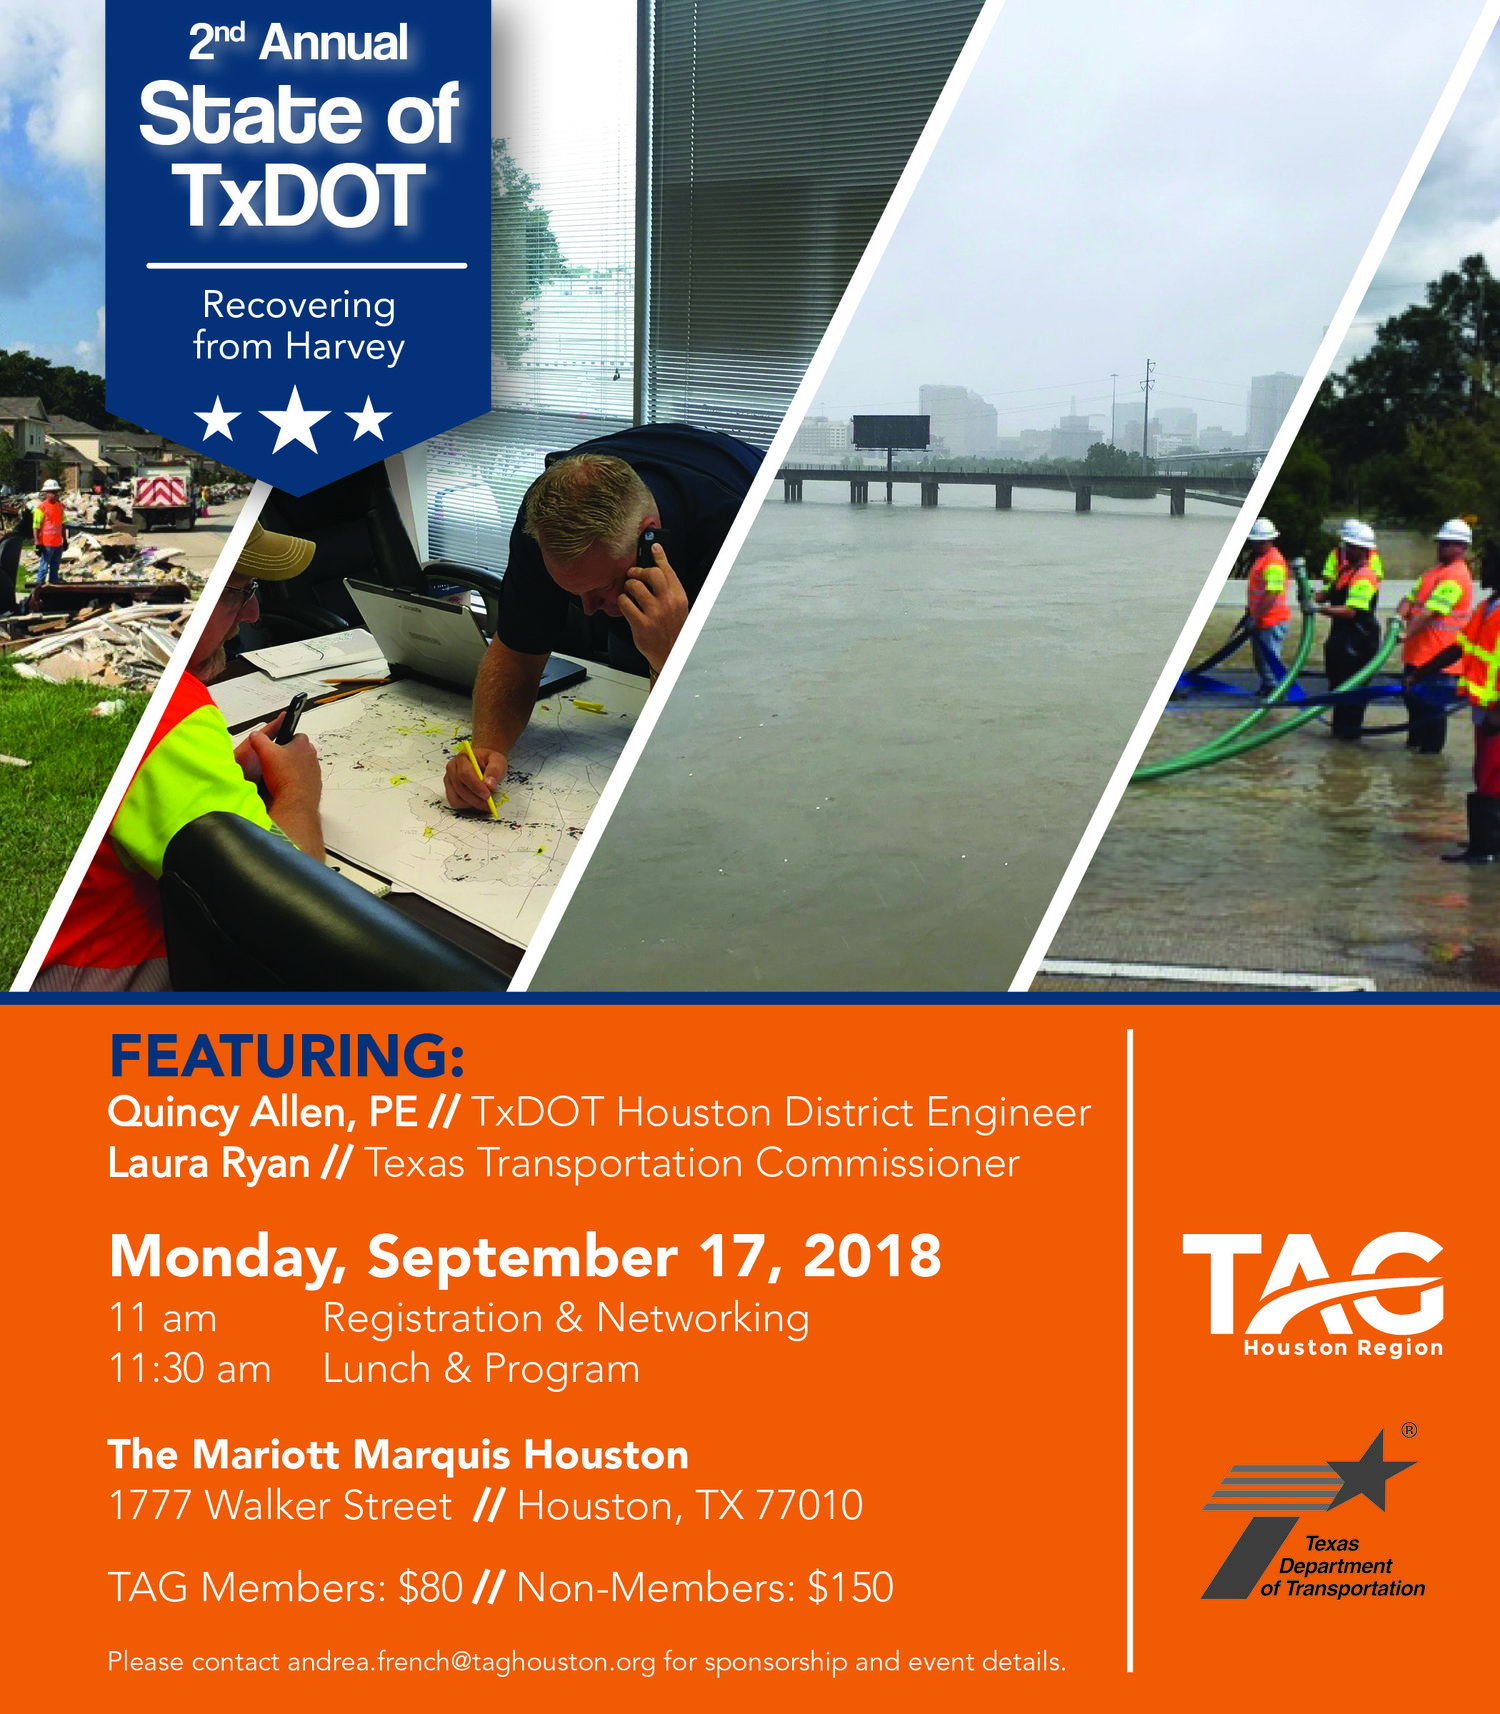 second annual state of txdot tag houston region